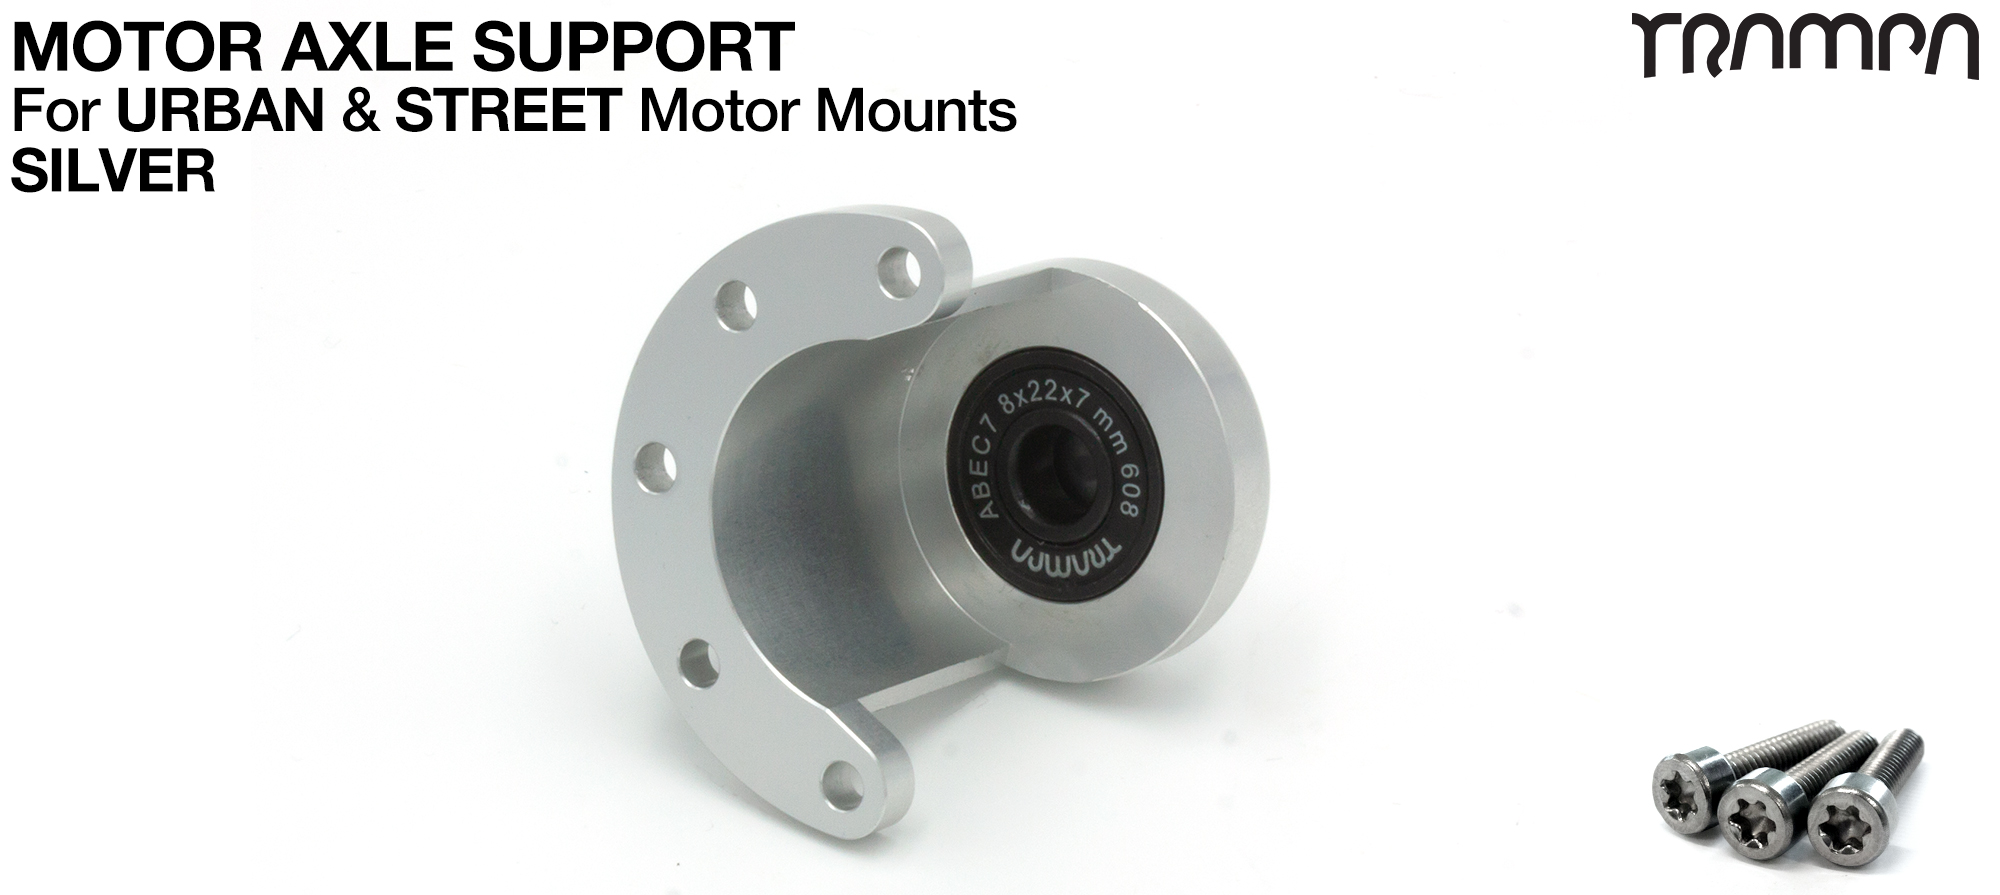 Motor Axle Support Housing with TRAMPA R608 8x22x7mm Bearing, C-Clip & Stainless Steel fixing Bolts for ORRSOM Longboard Motor Mounts  - SILVER